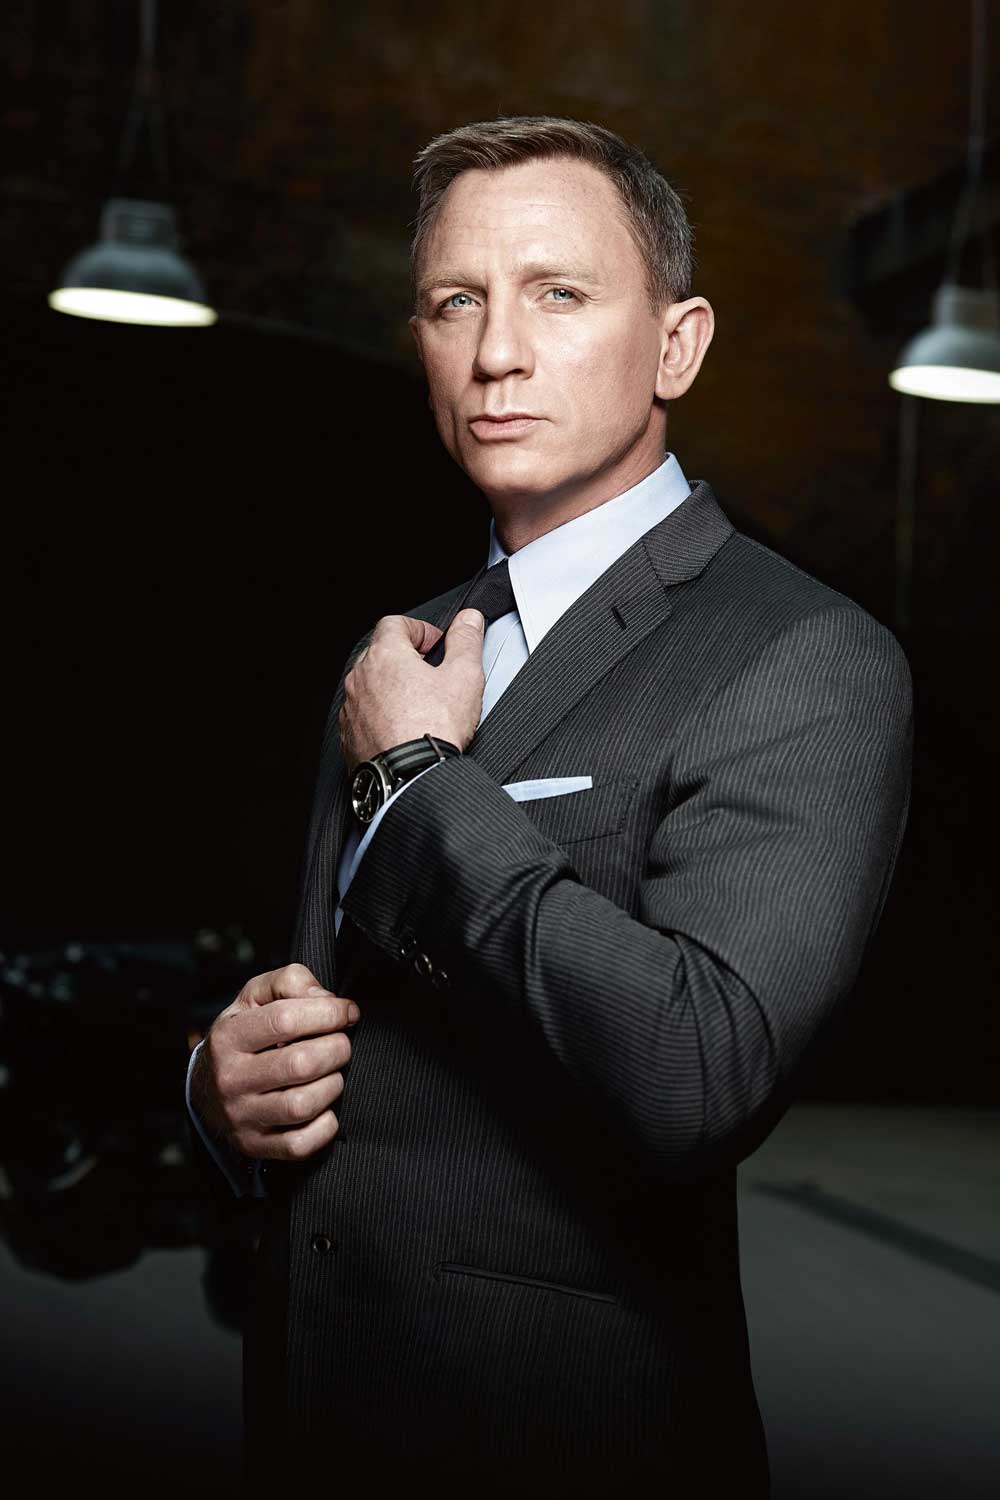 Current Bond actor Daniel Craig has radically transformed our modern perception of the special agent